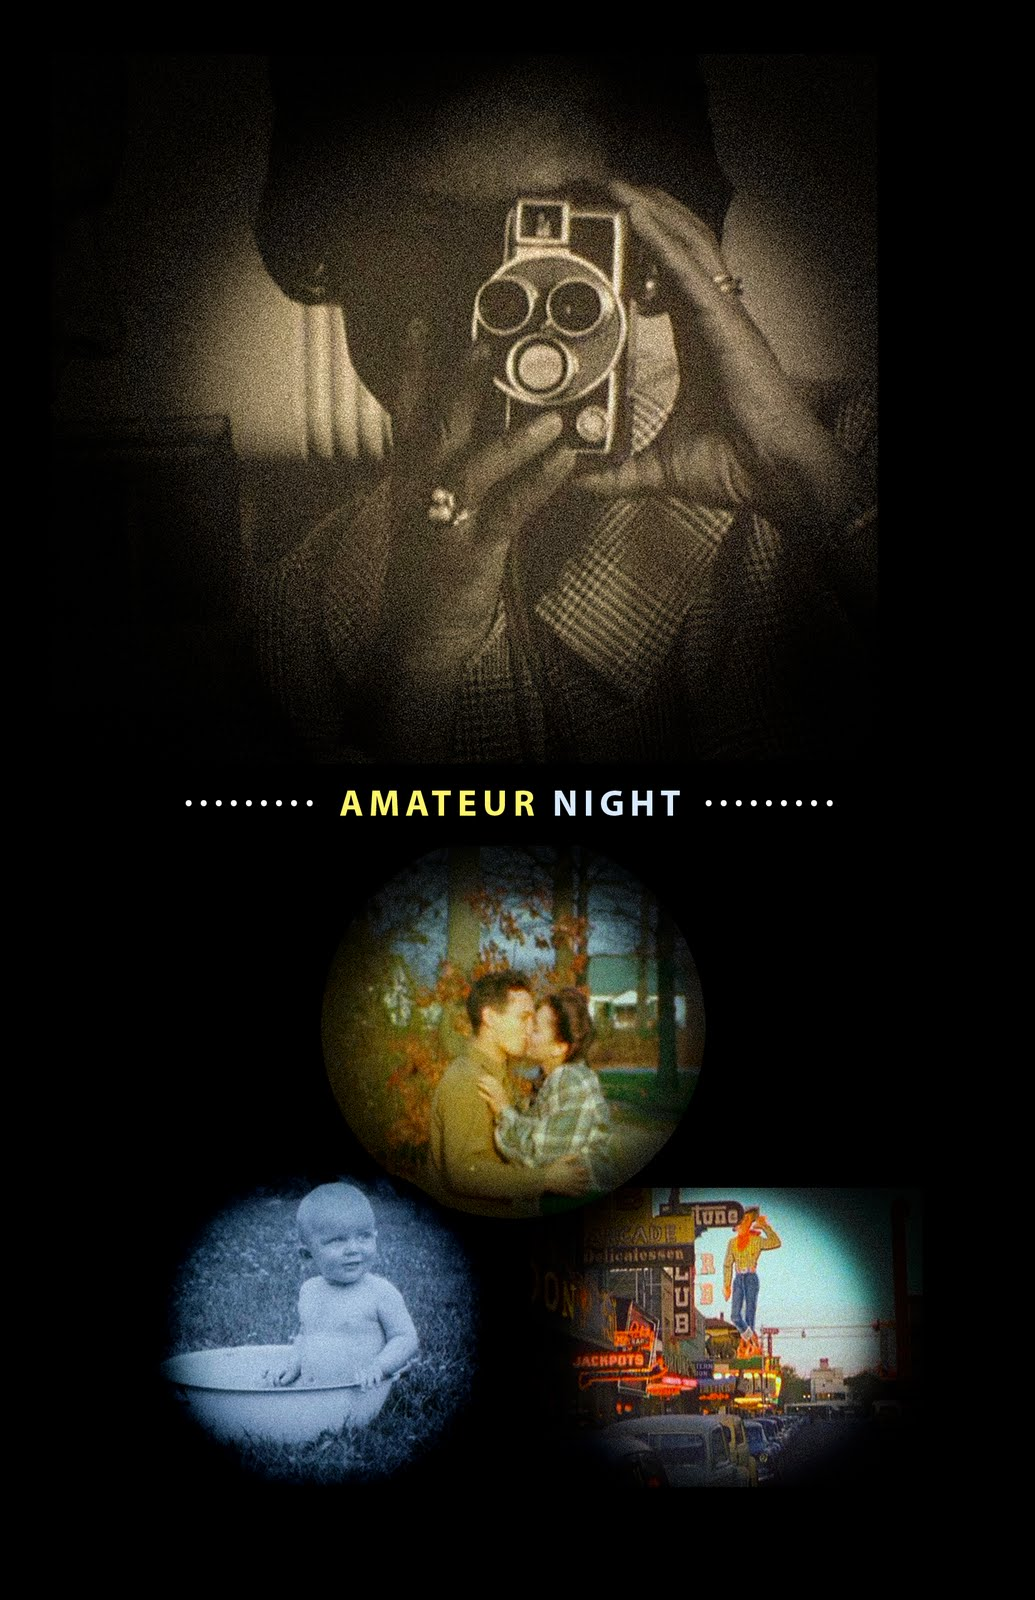 [AMATEUR NIGHT: HOME MOVIES FROM AMERICAN ARCHIVES screens Sunday May 1st at ...